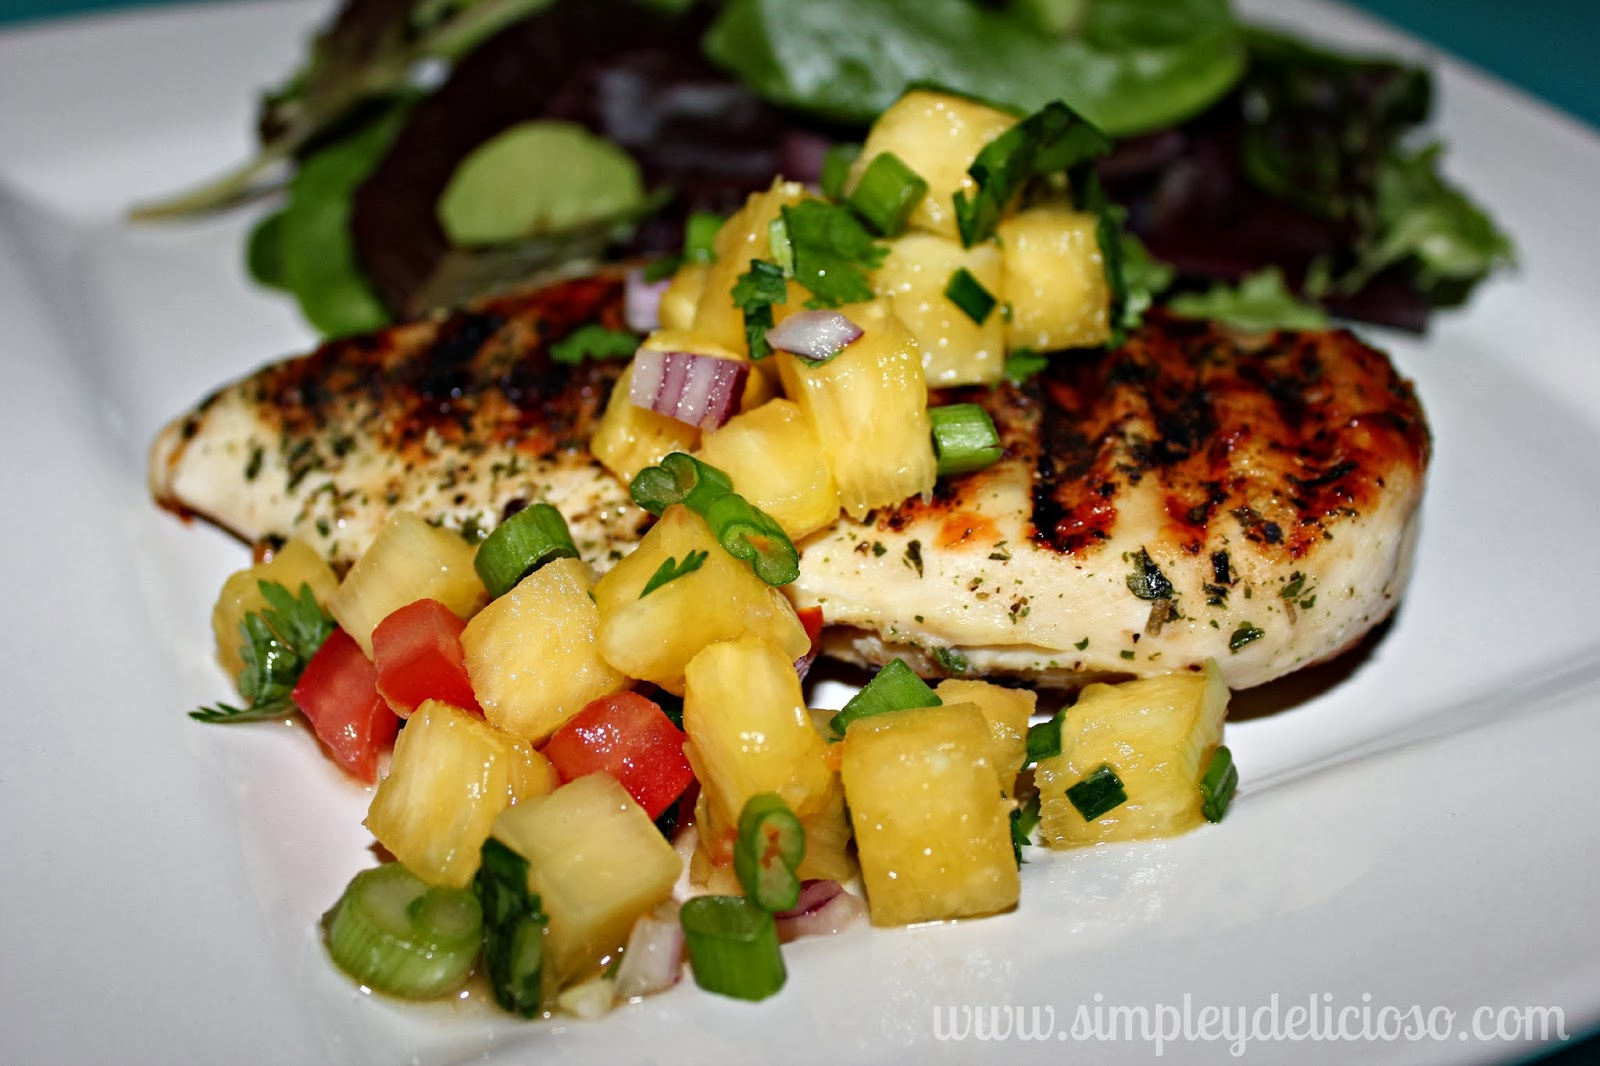 Download image Chicken With Pineapple Salsa PC, Android, iPhone and ...